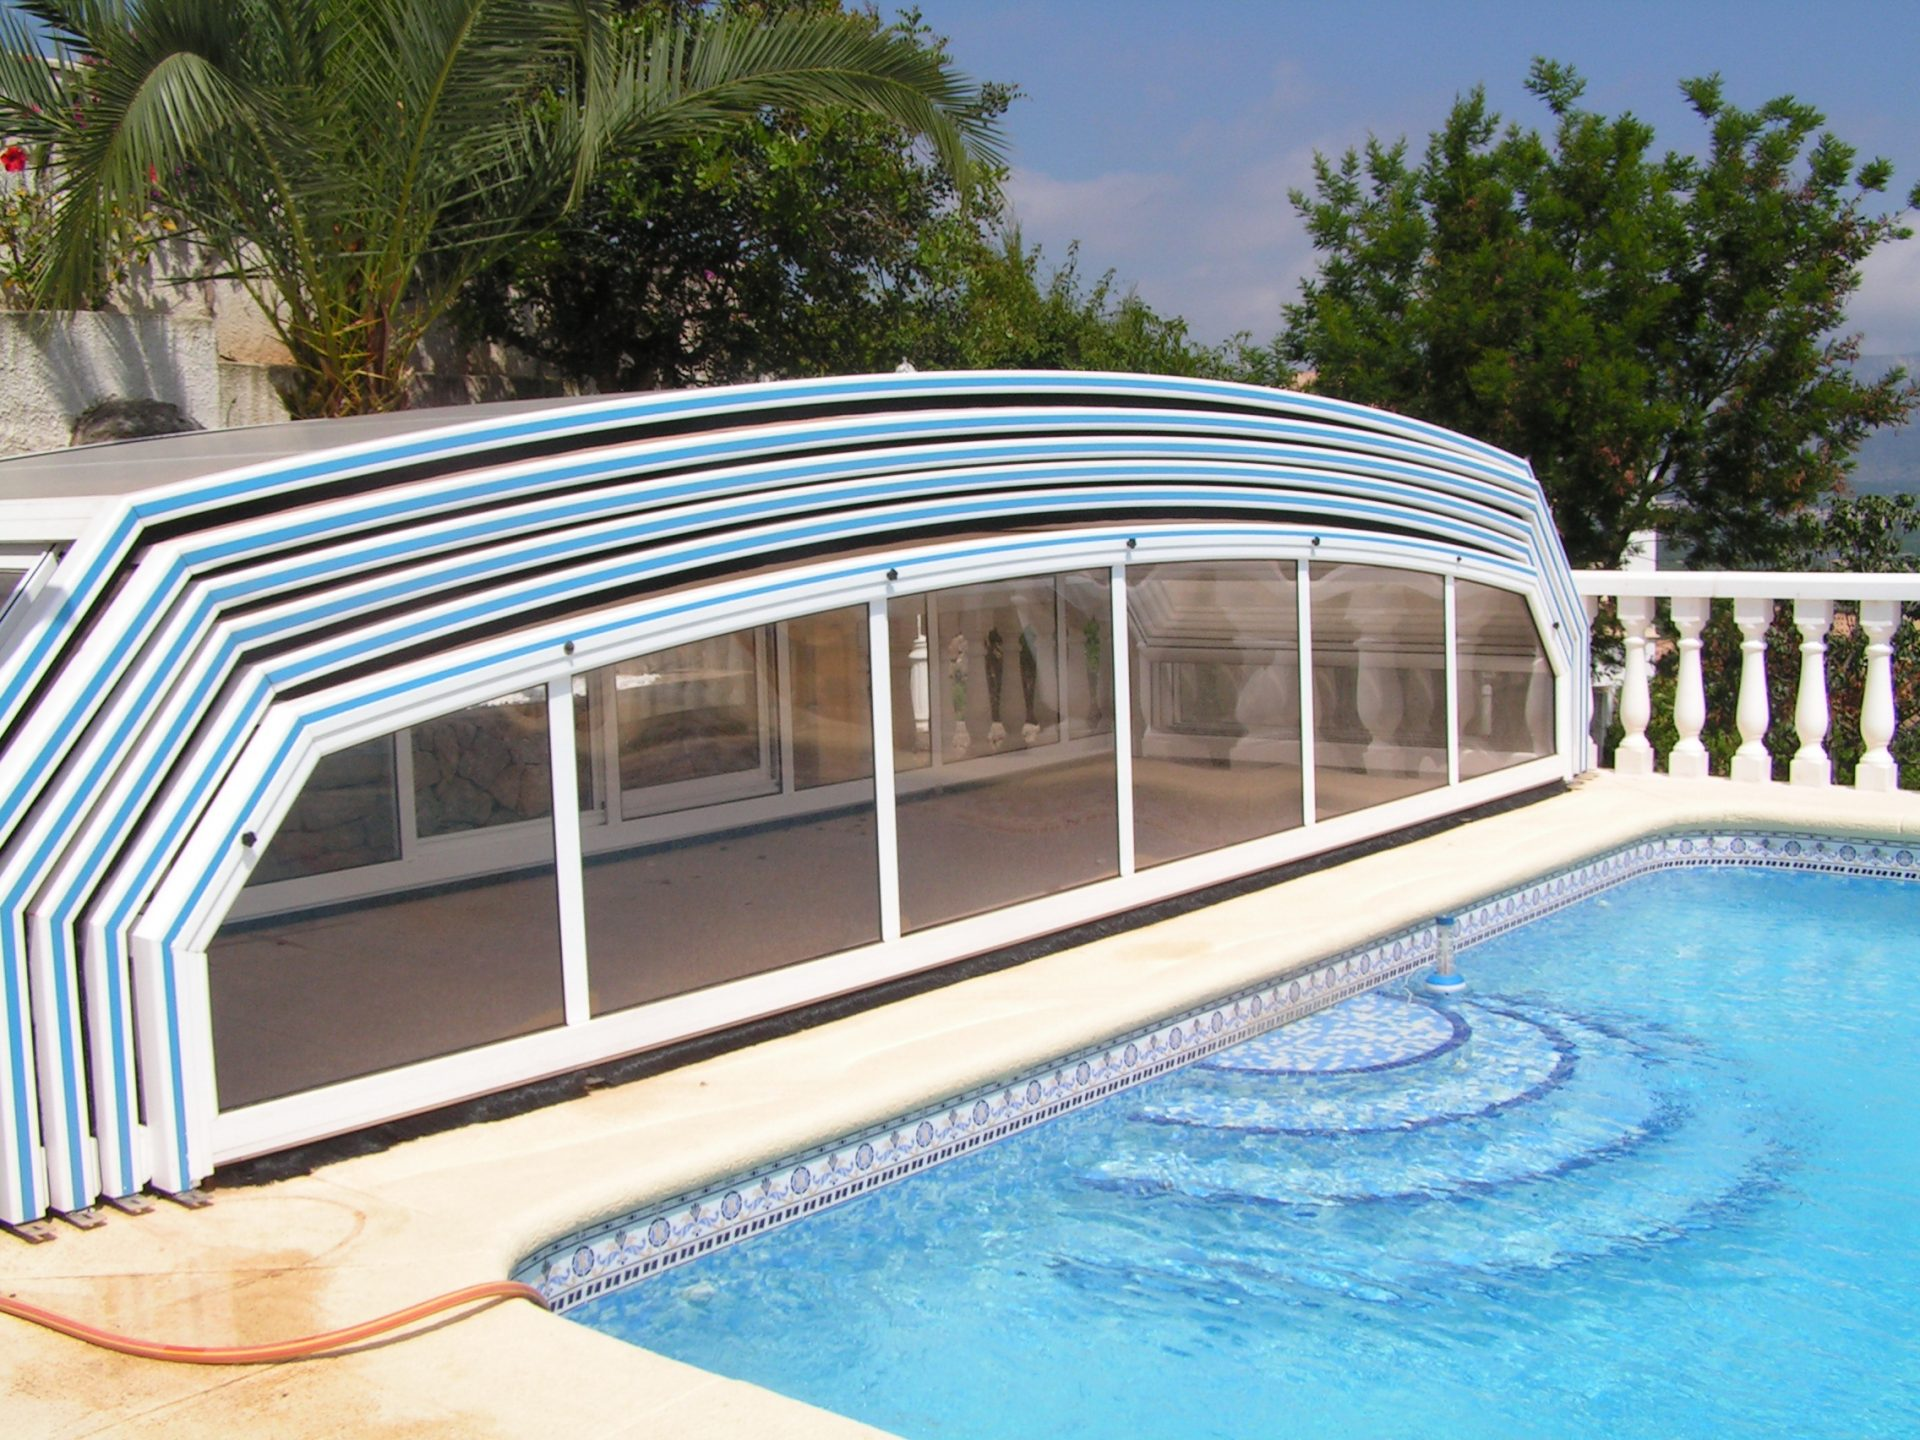 Abri piscine paris t lescopique sur roulette for Abris piscine uv